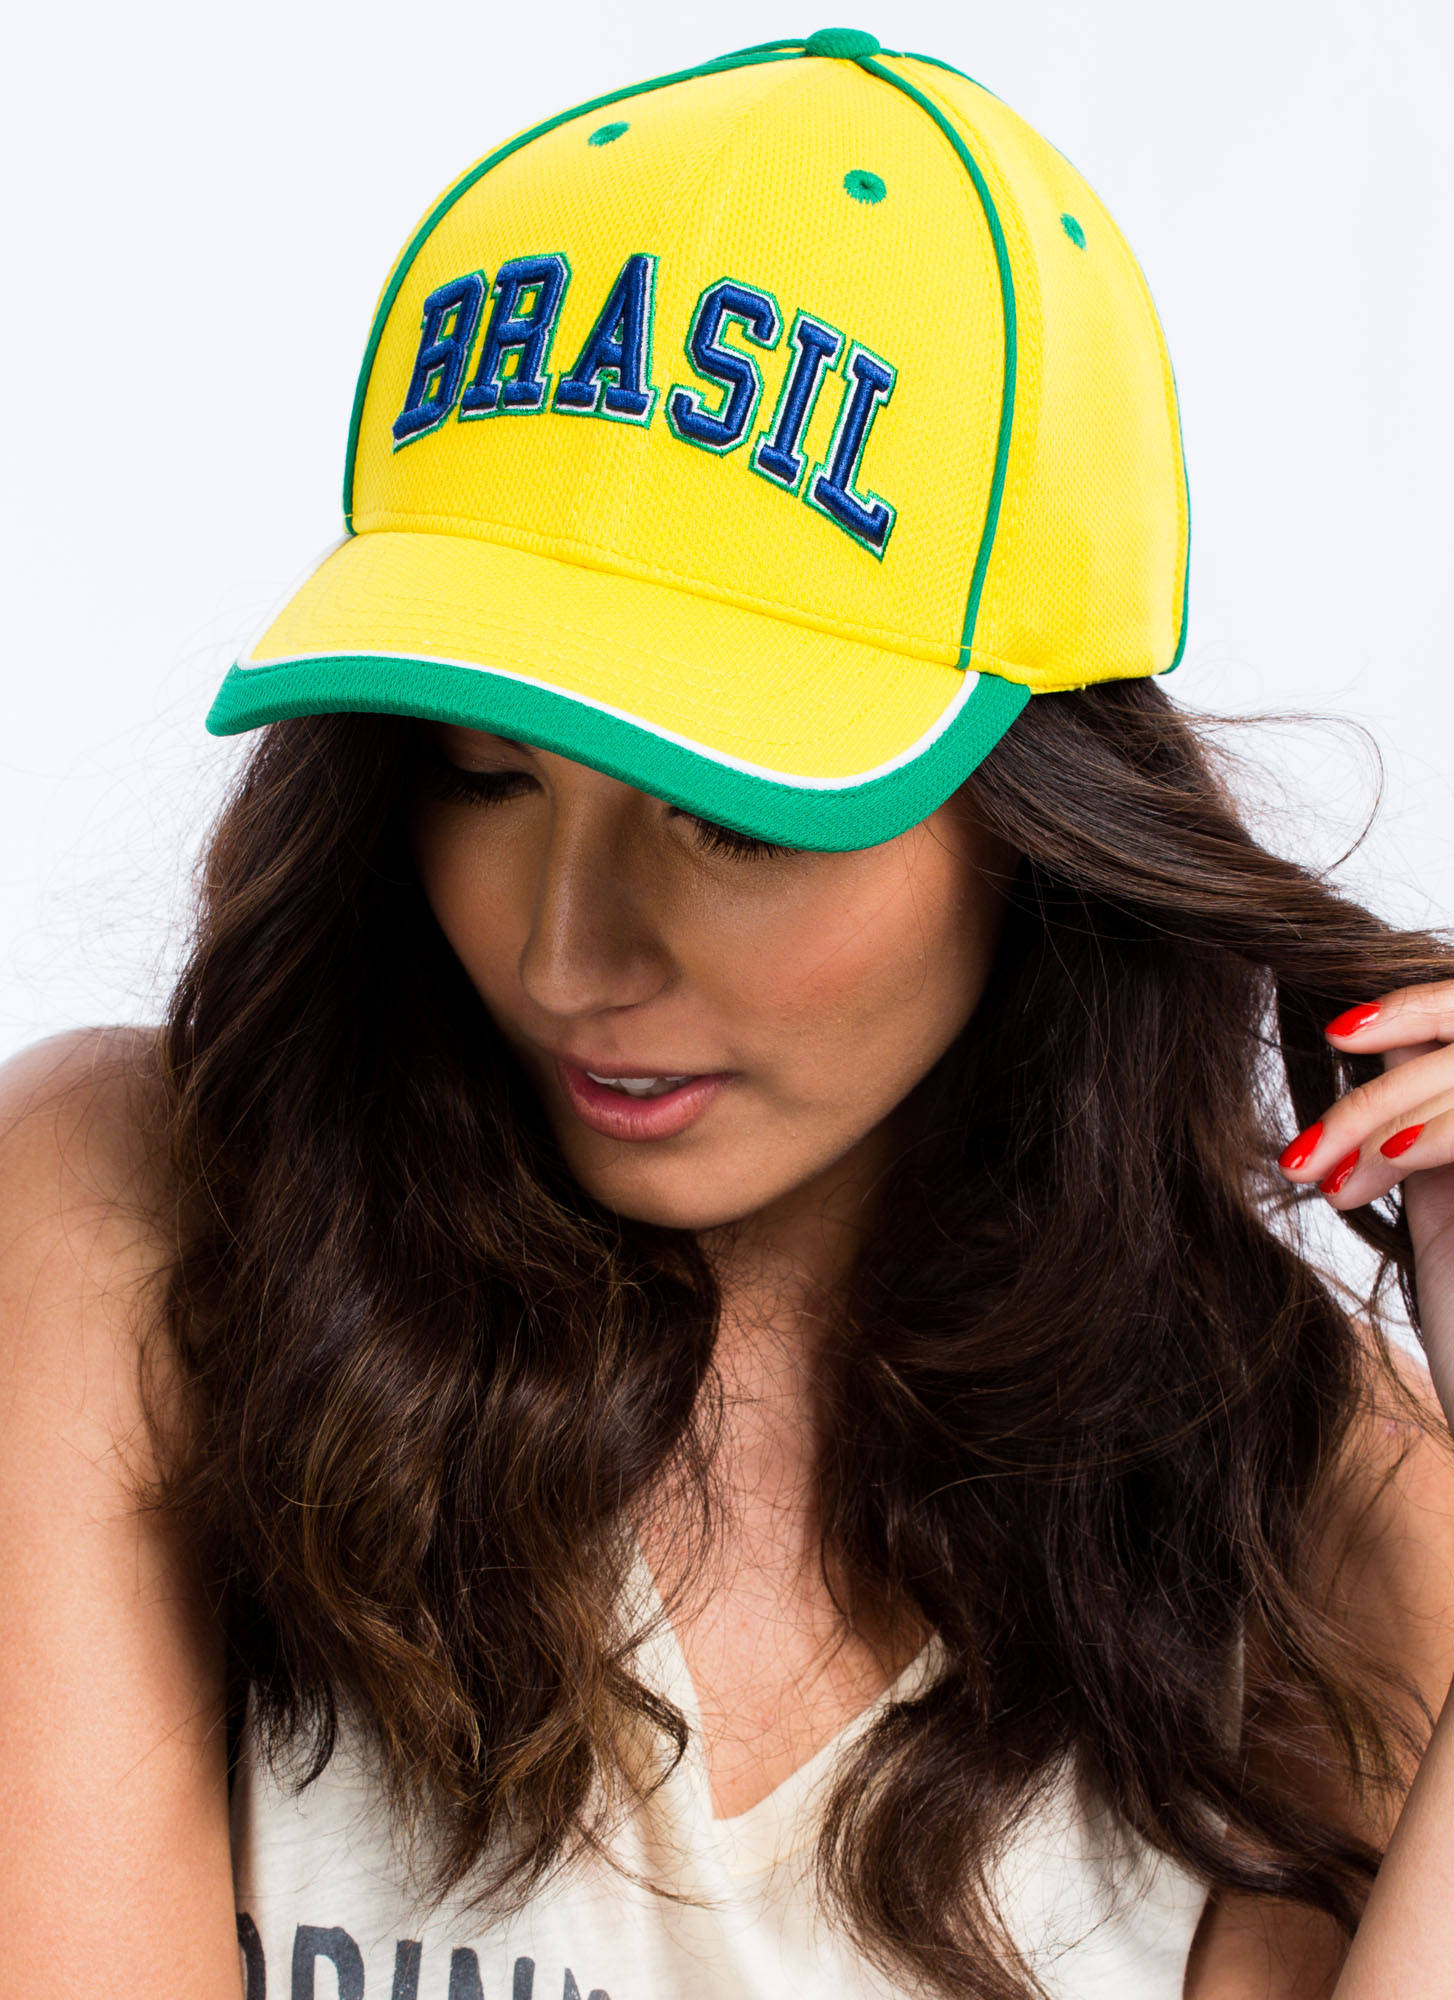 International Country Snapback Hat BRAZIL